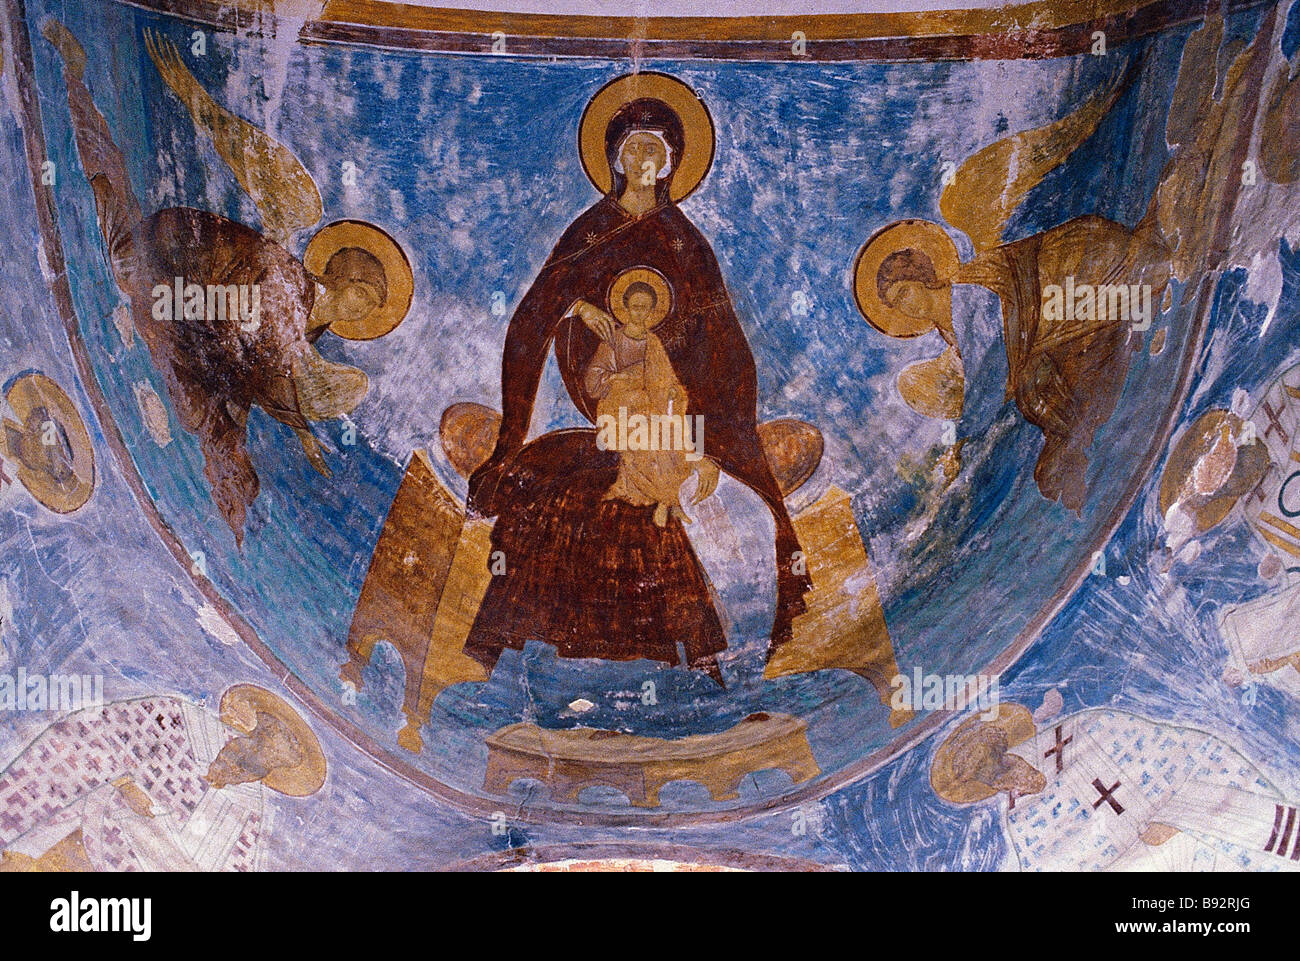 Madonna and Child by Dionysius 1500 1503 in the central apse the central part of the altar of the Nativity of the - Stock Image